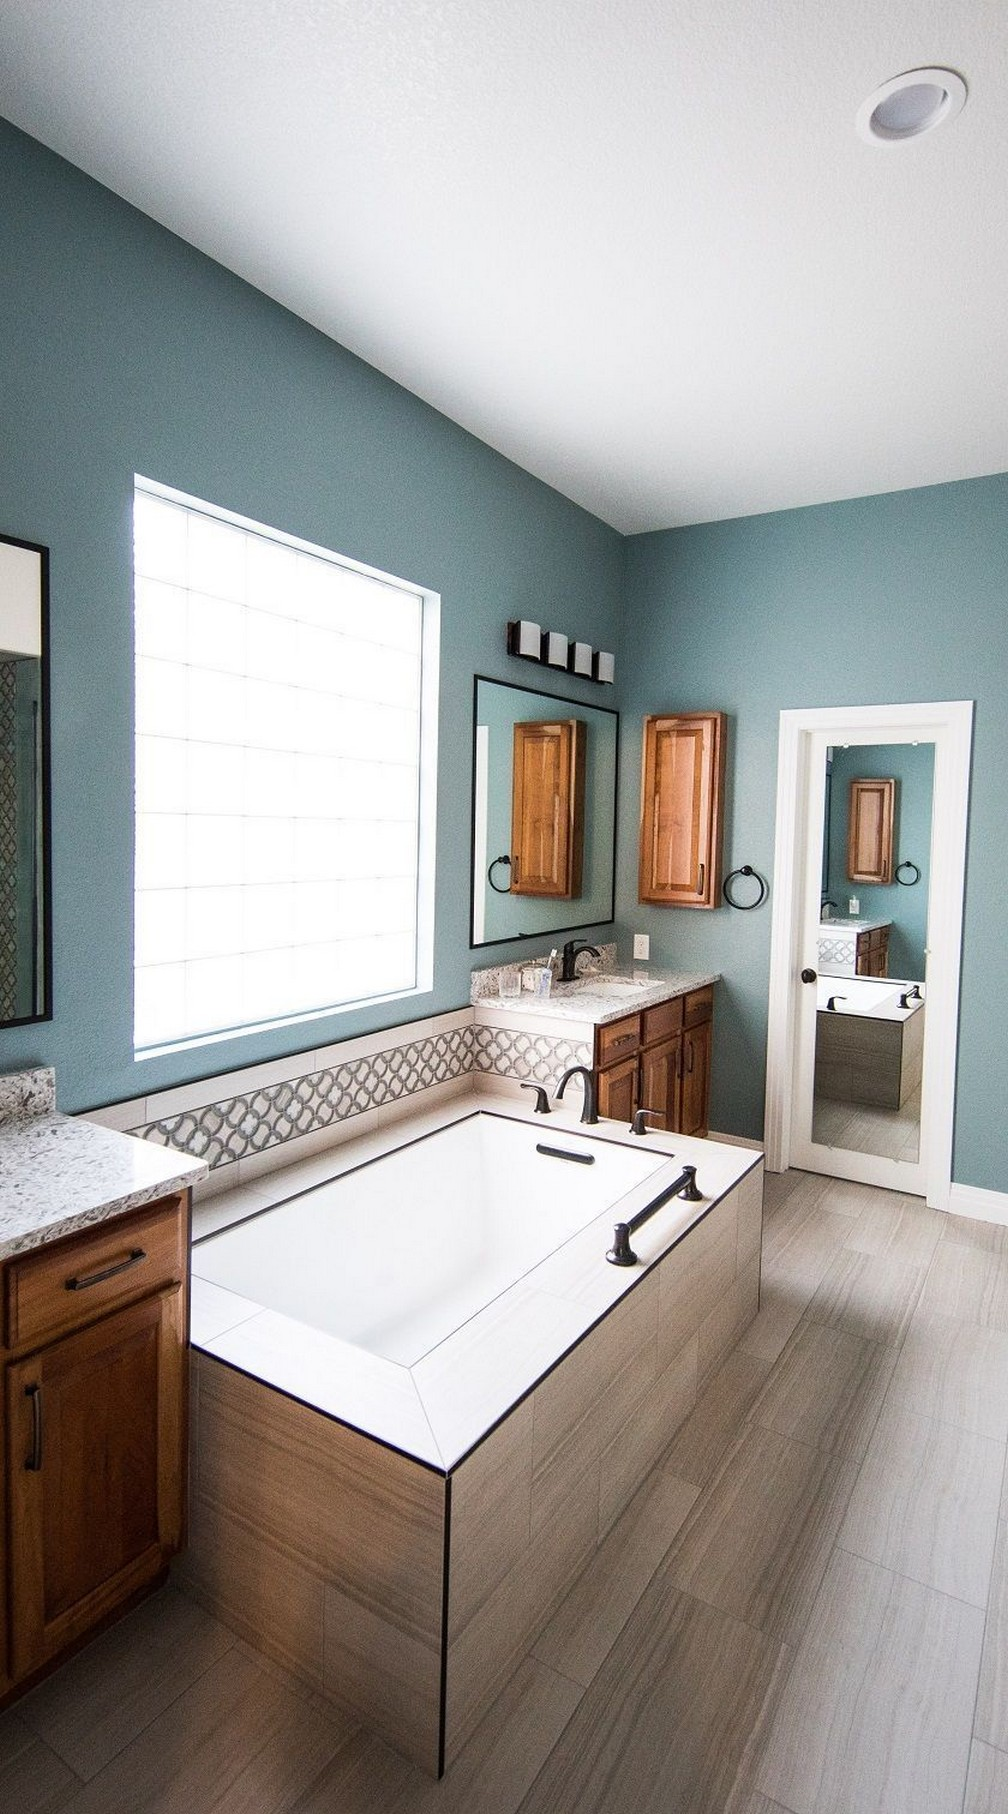 70 Master Bathroom Remodeling For Man and Woman Home Decor 50